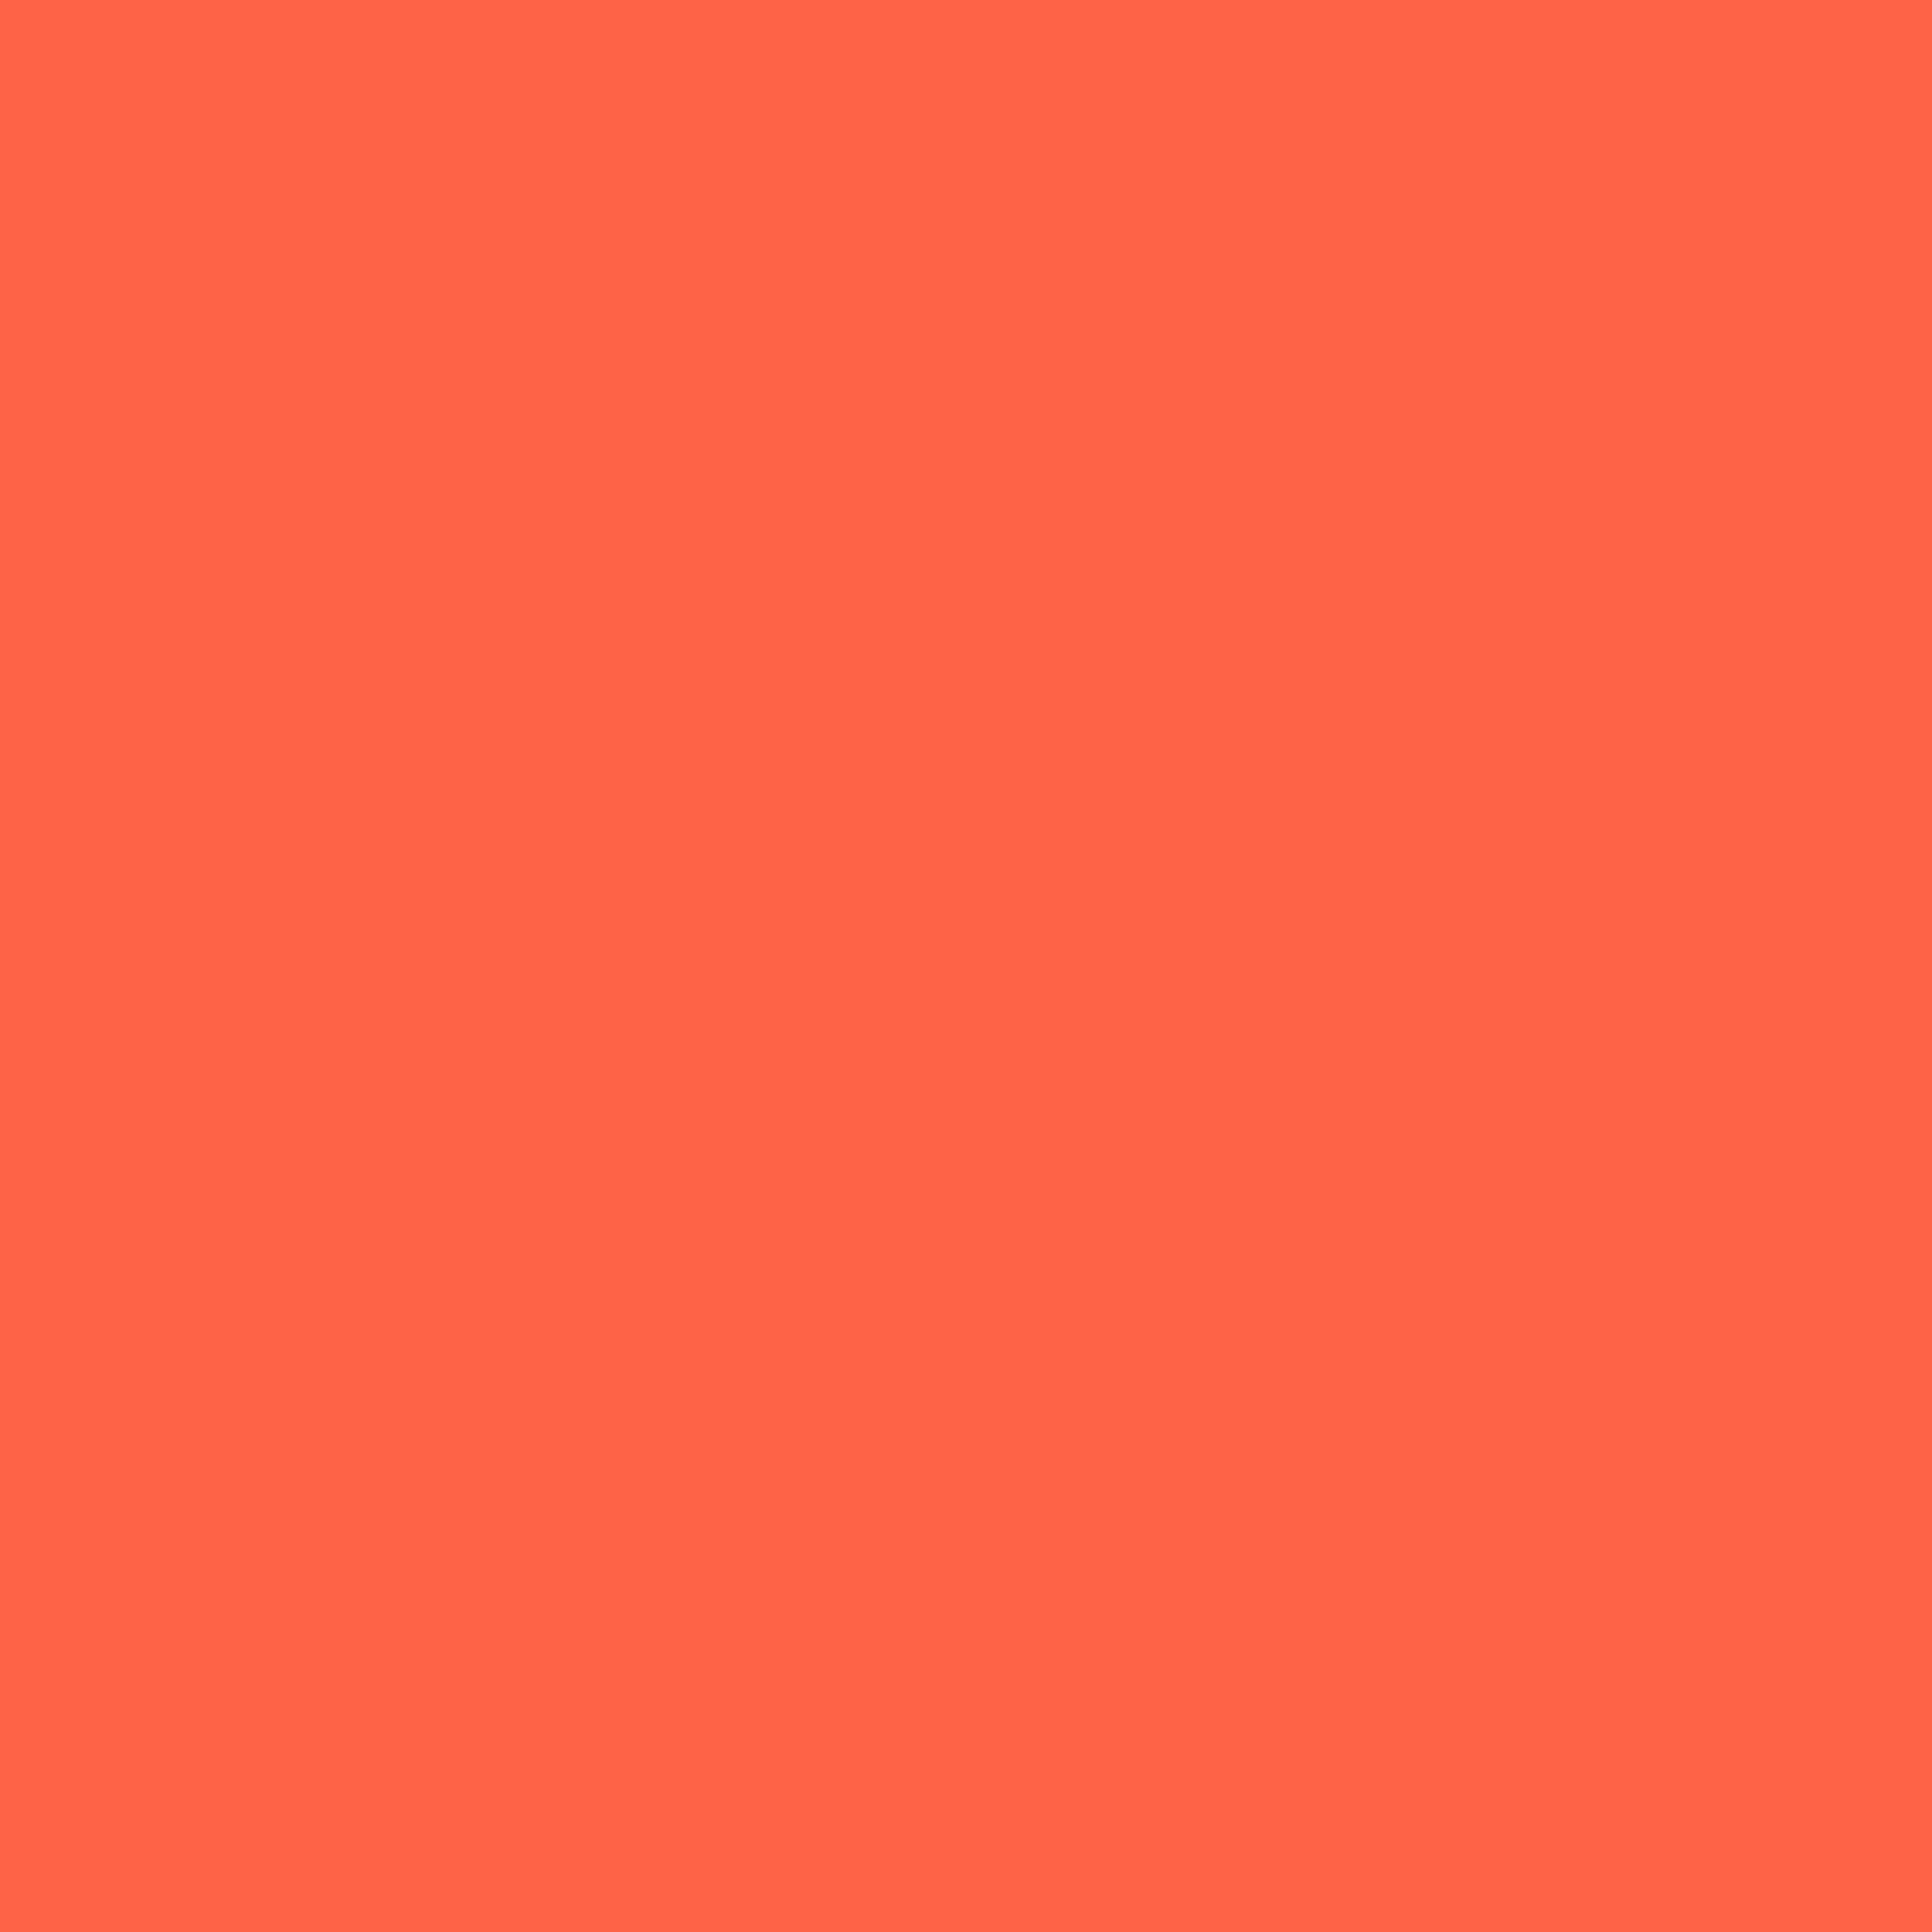 2048x2048 Tomato Solid Color Background